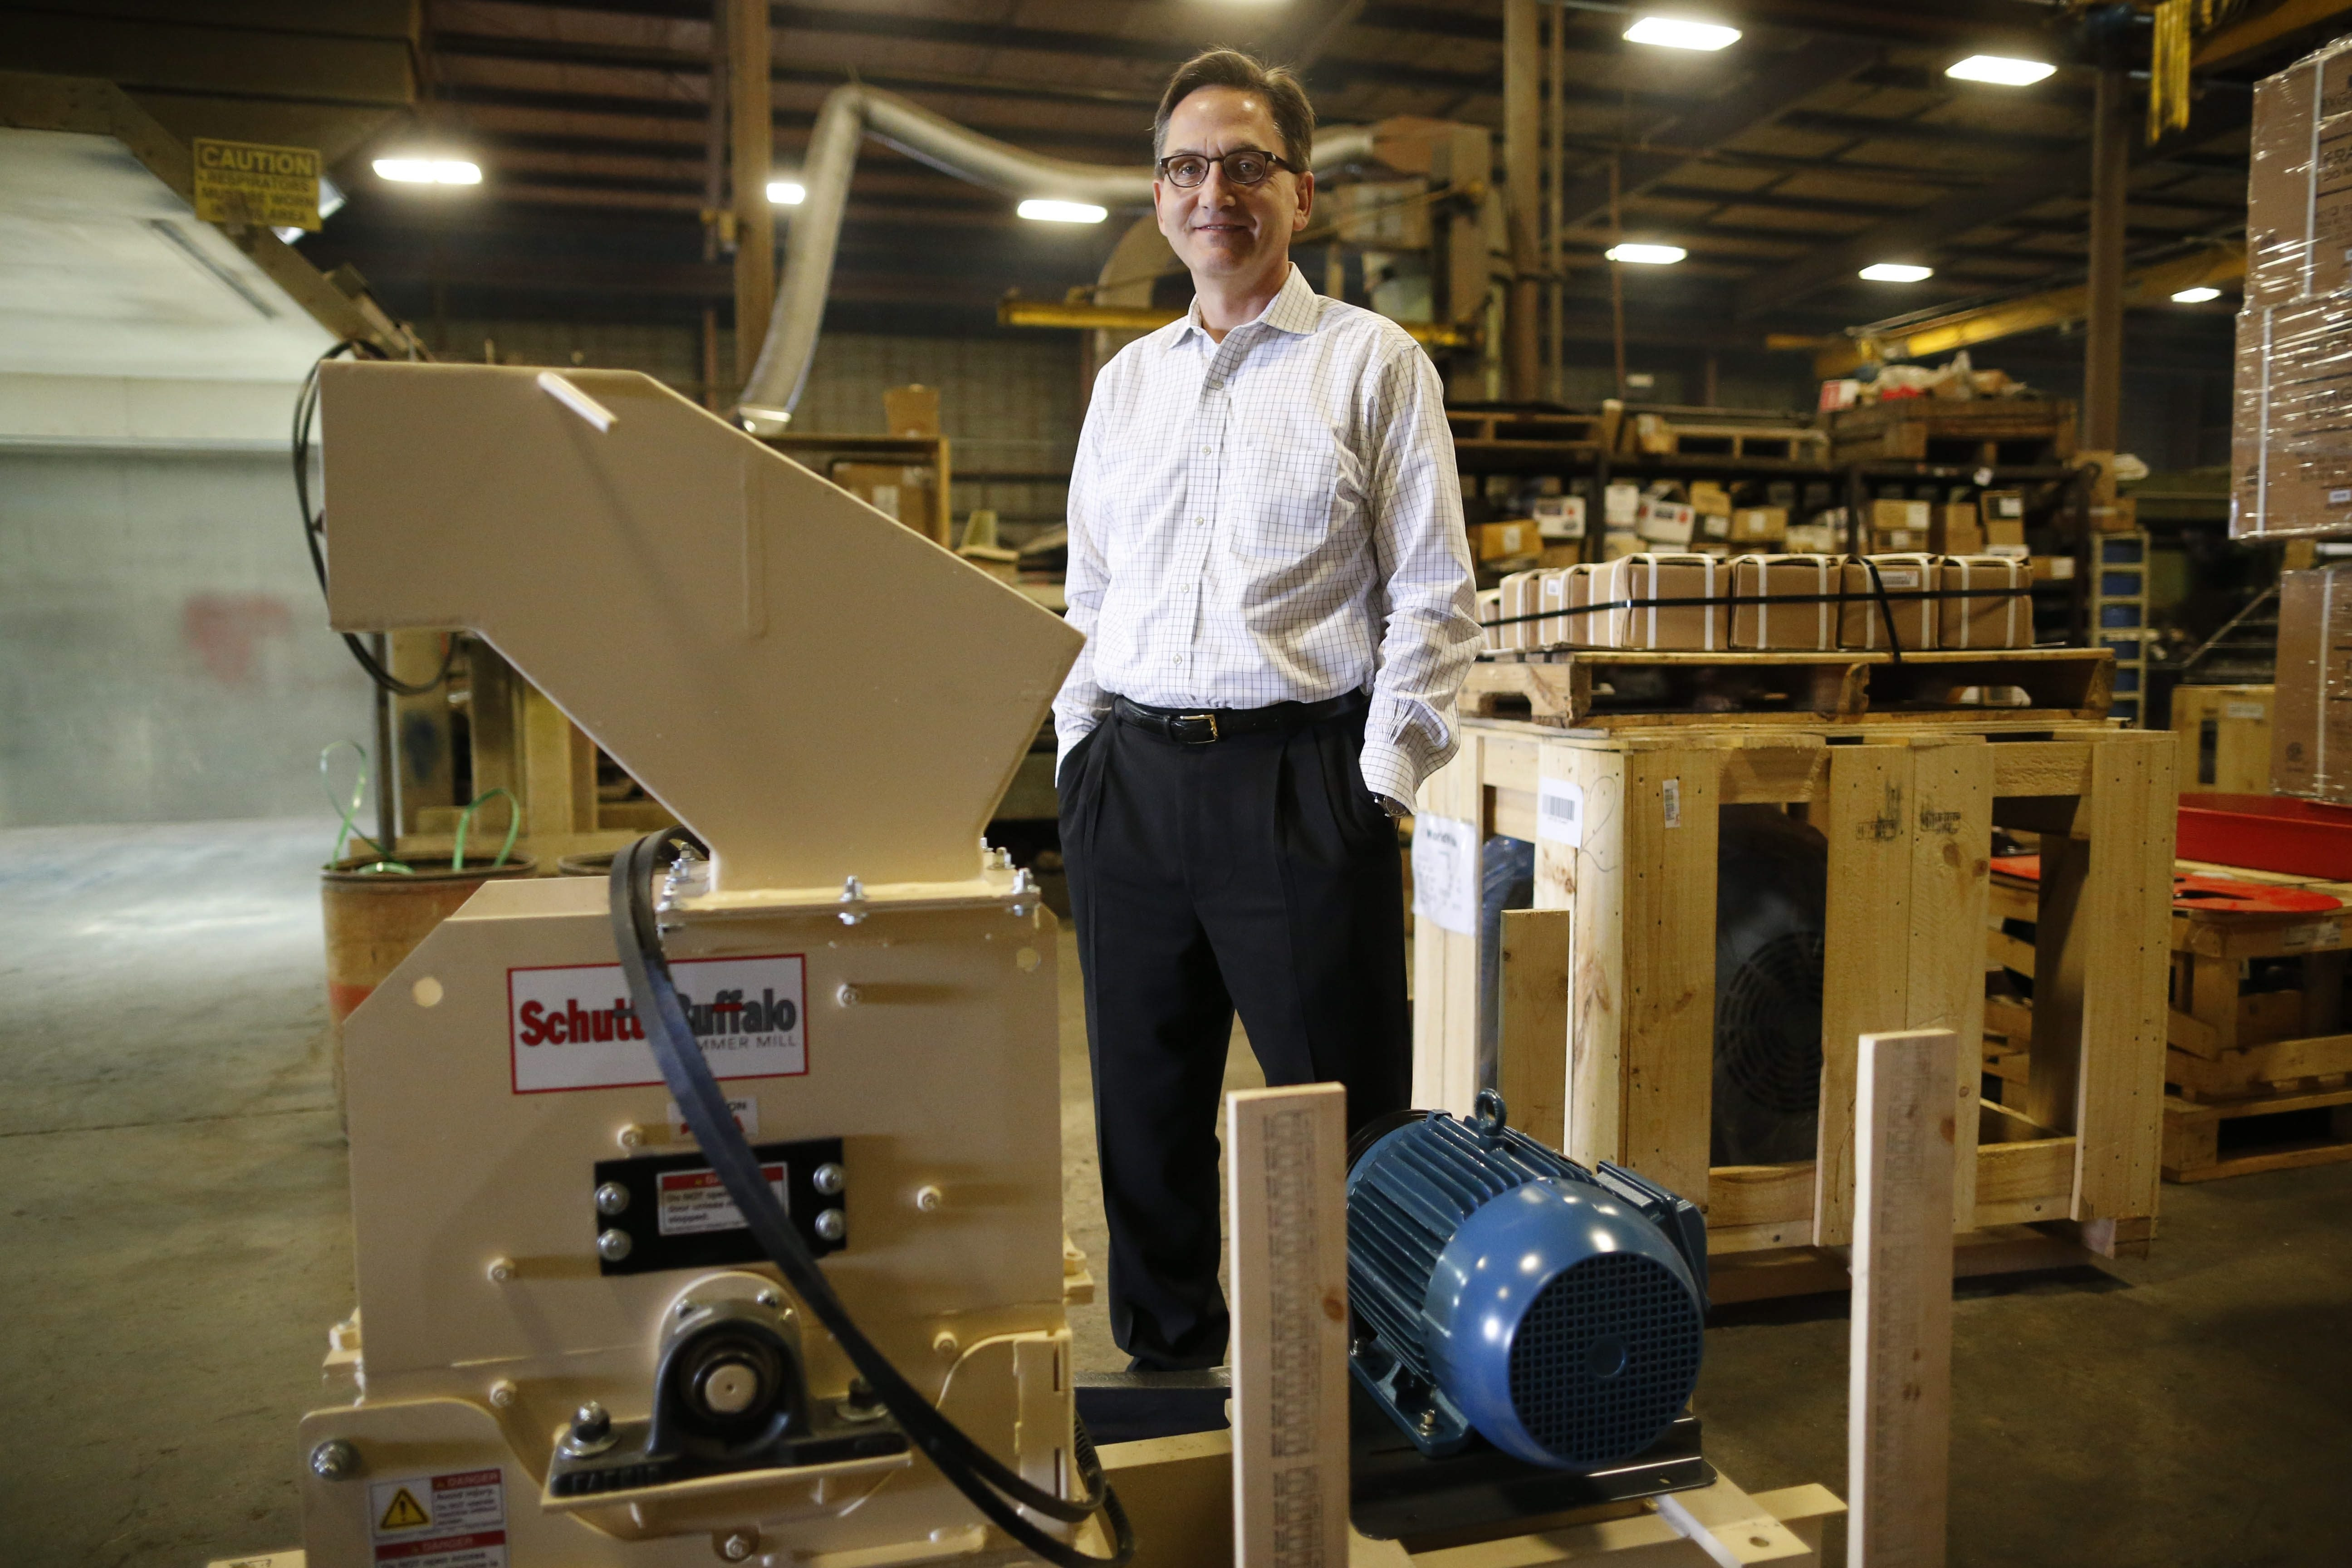 Martin Berardi, CEO of Schutte-Buffalo Hammermill, bought the manufacturer after a long career with Moog Inc.